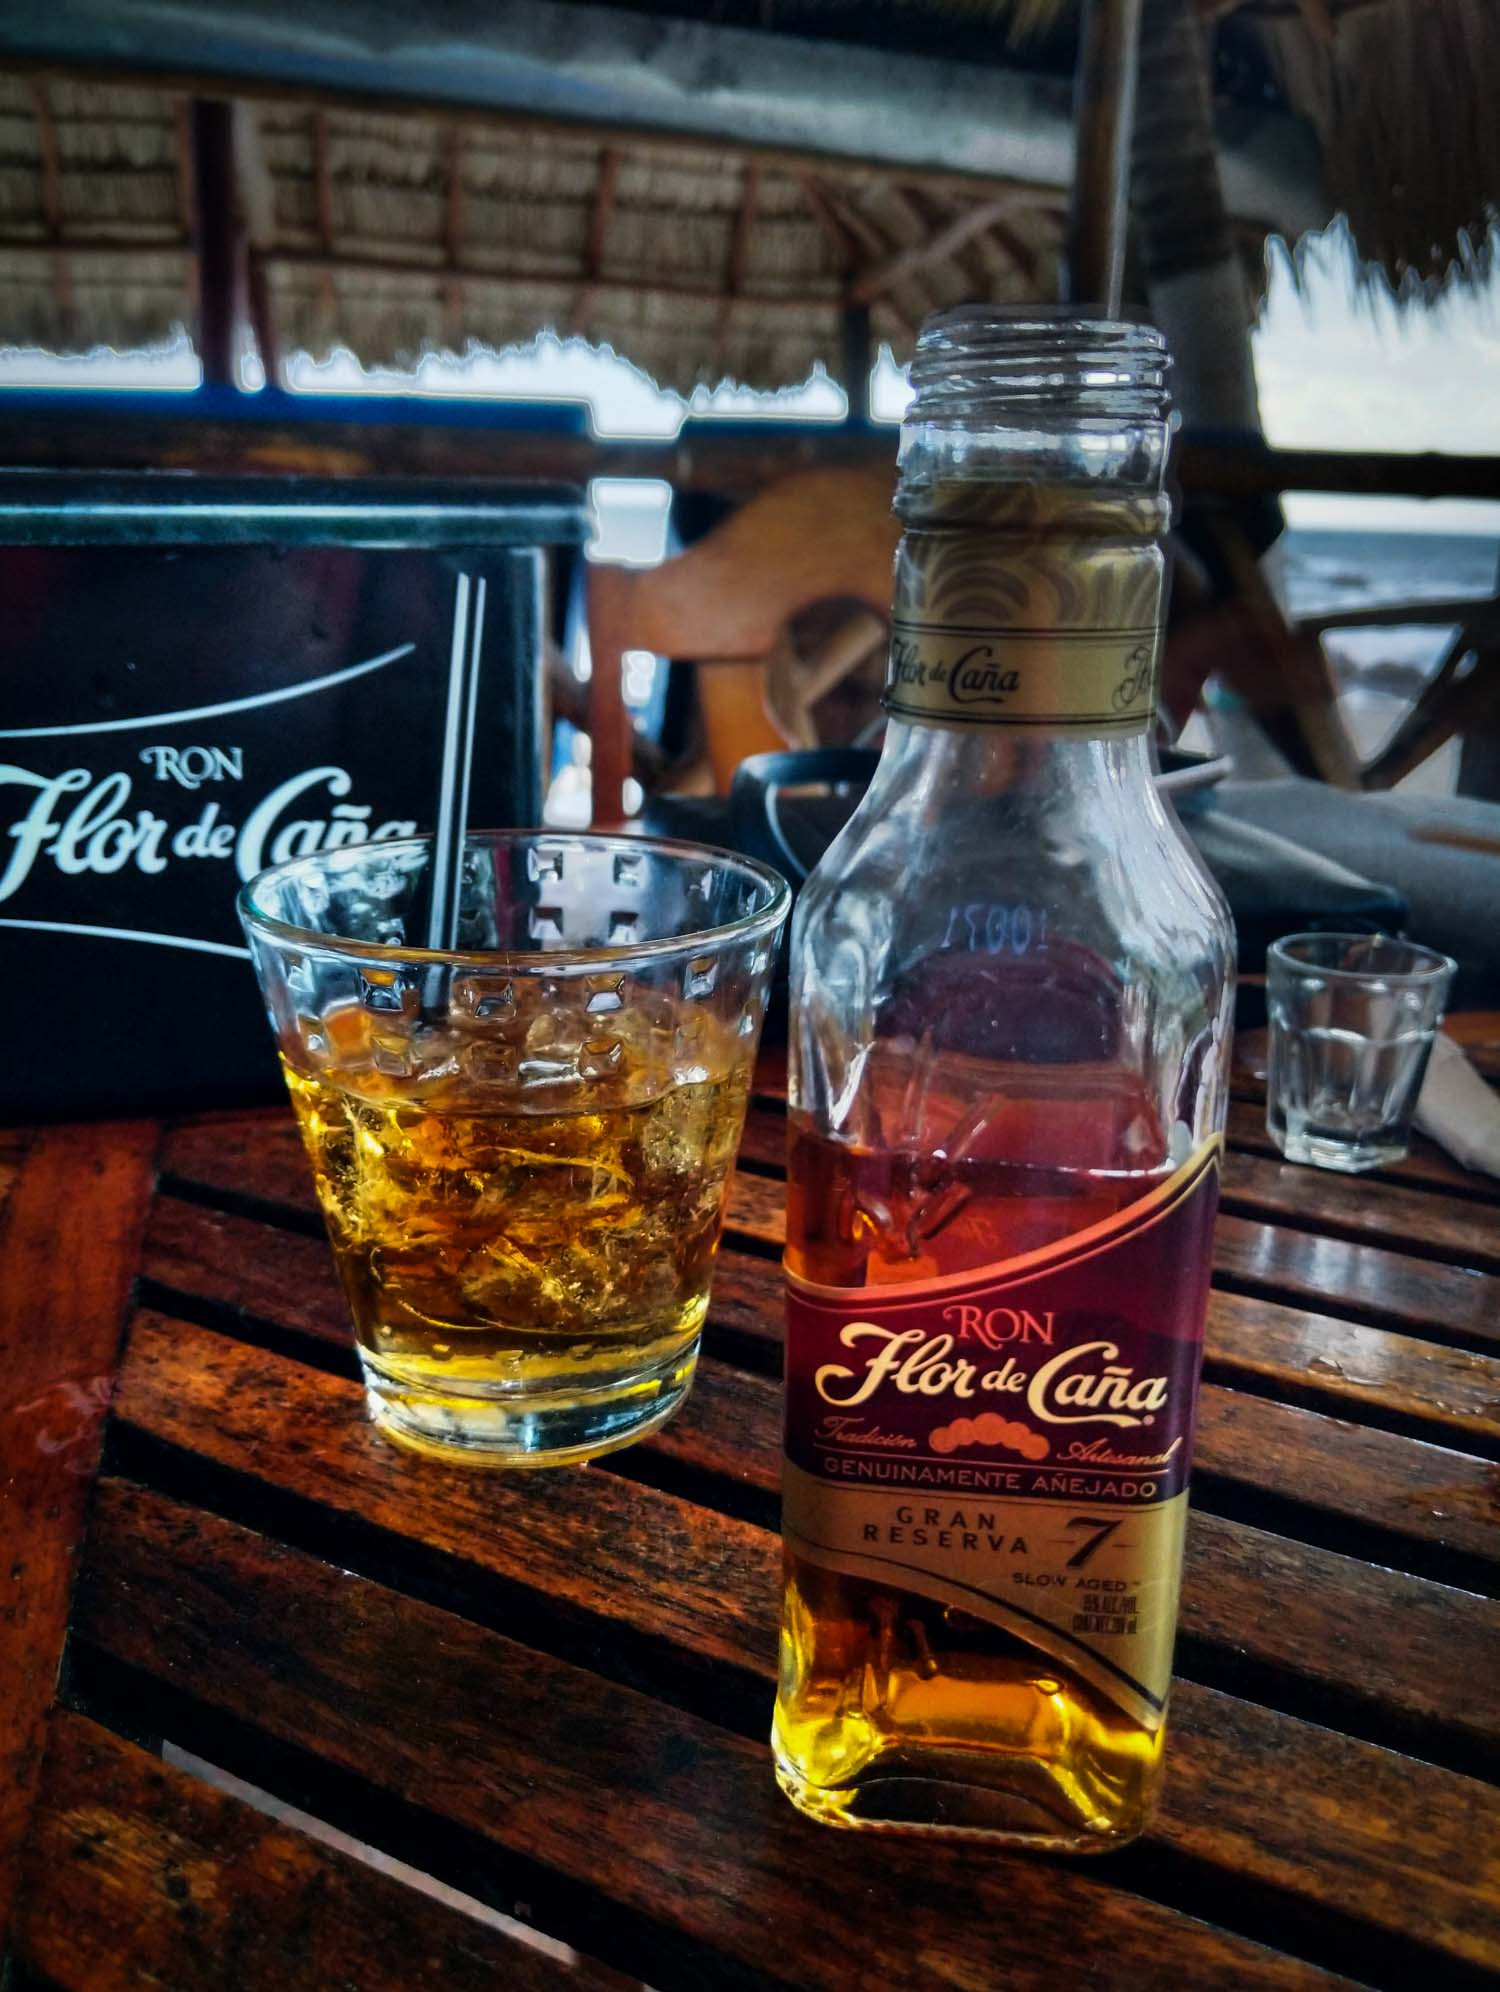 Bottle of Flor de Cana rum on a table with a glass behind it